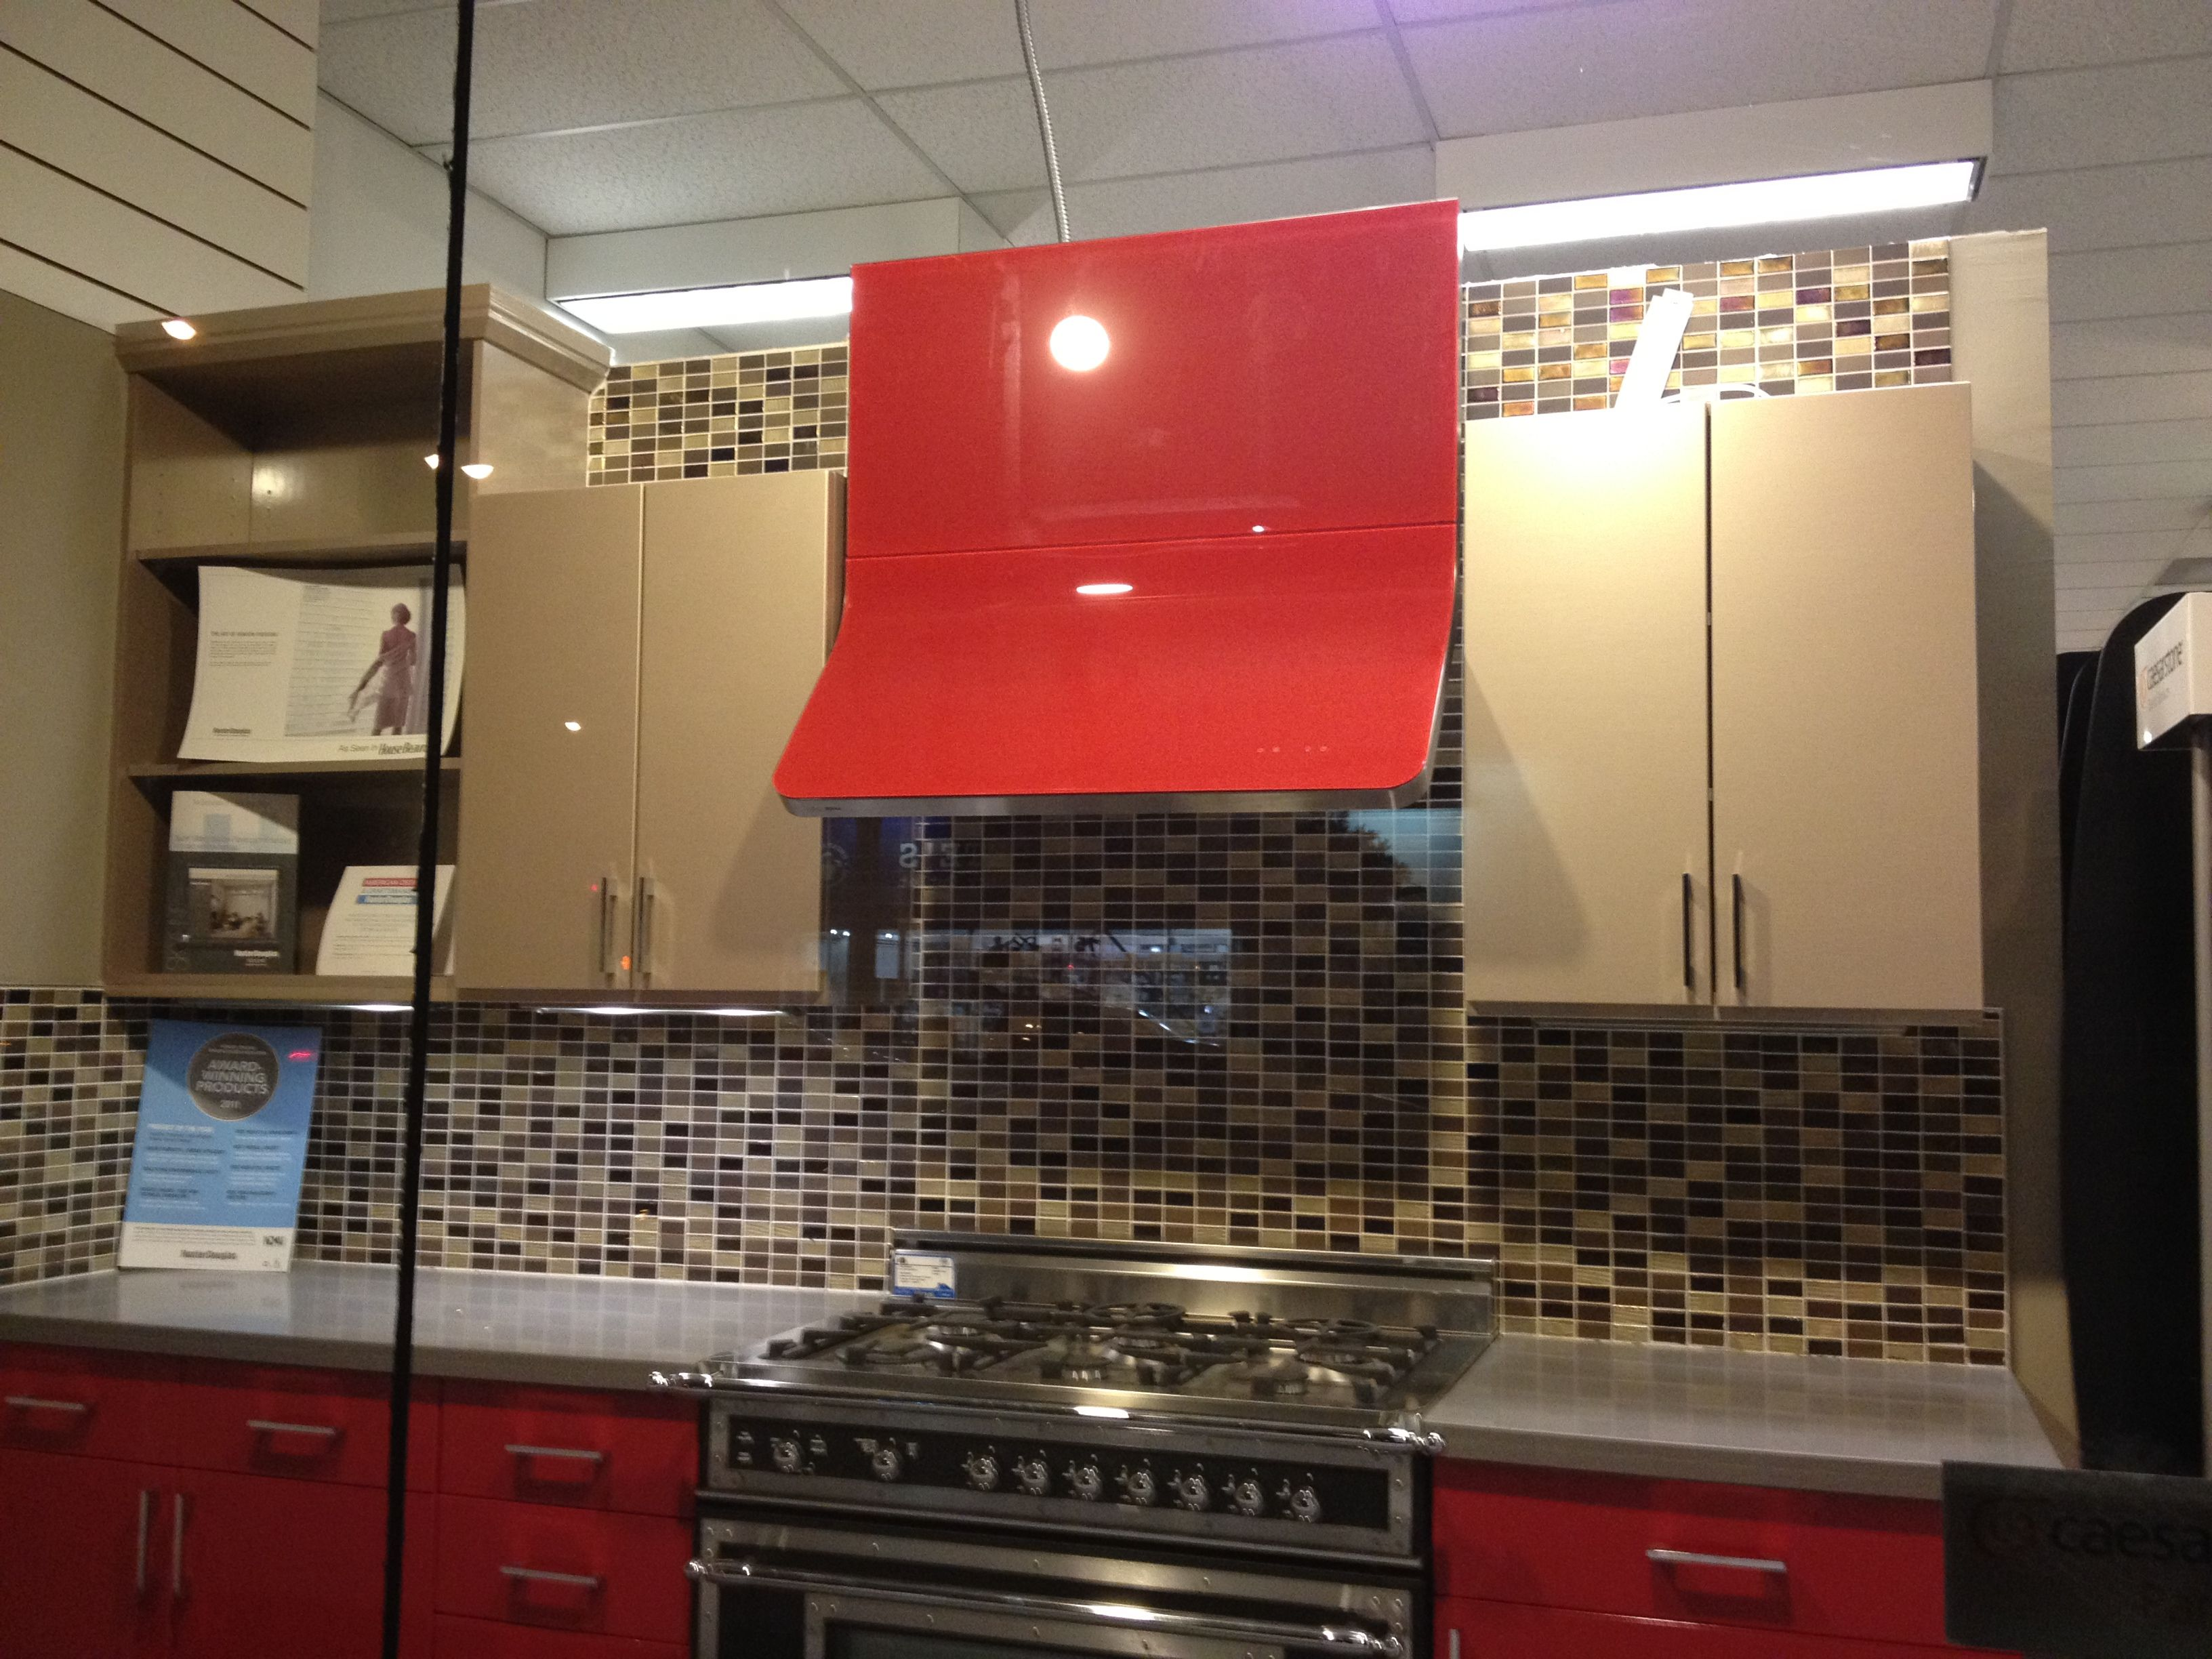 quiet cabinet you efficient under images inch powerful wood zephyr steel how all stainless ductless design hoods modern ideas nice recommended stove range also hood vent to kitchen and for pretty